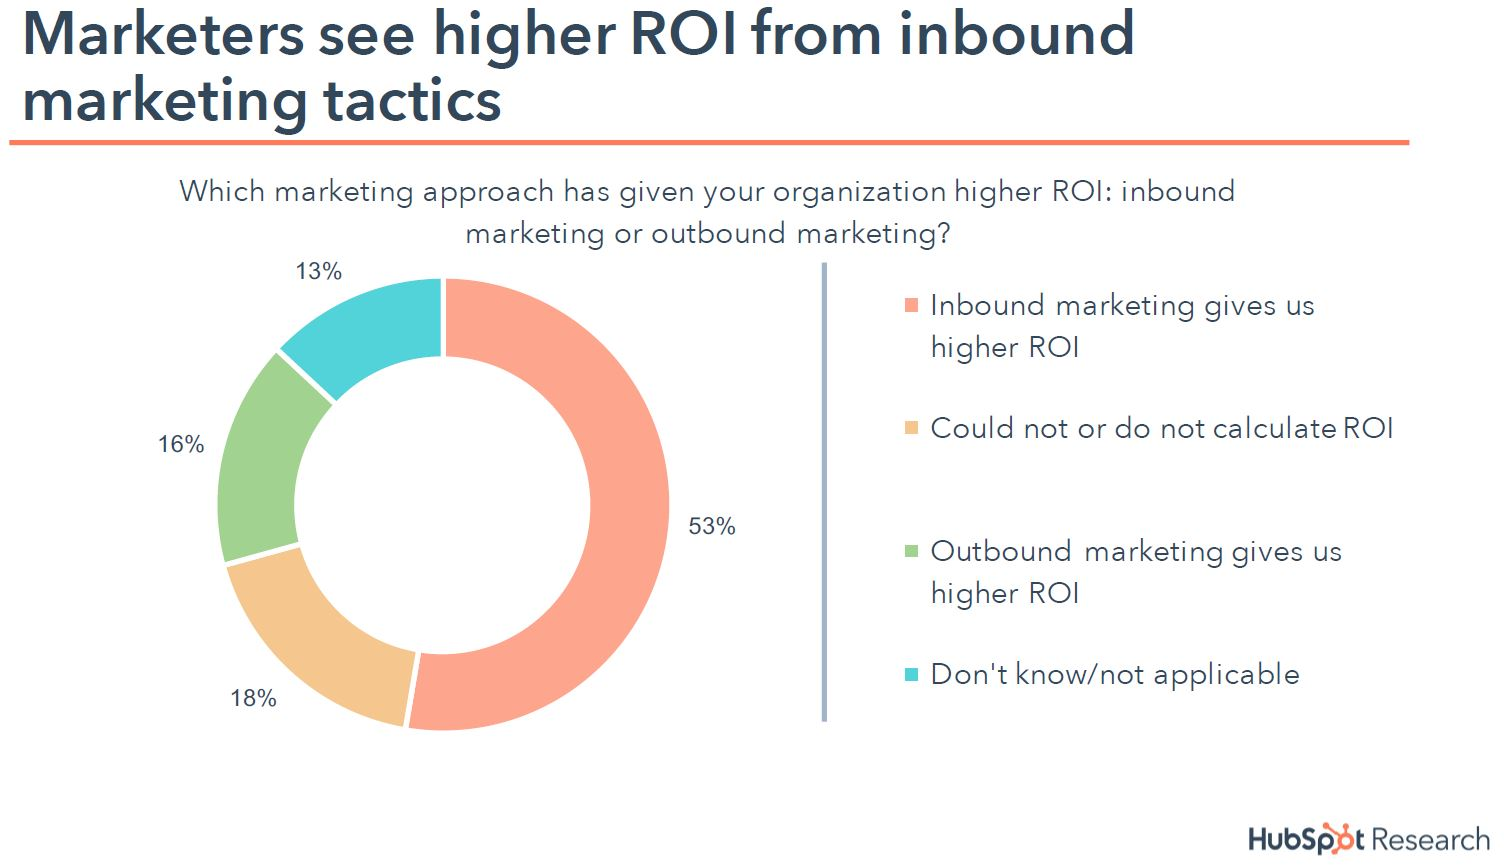 Marketers see higher ROI from inbound marketing